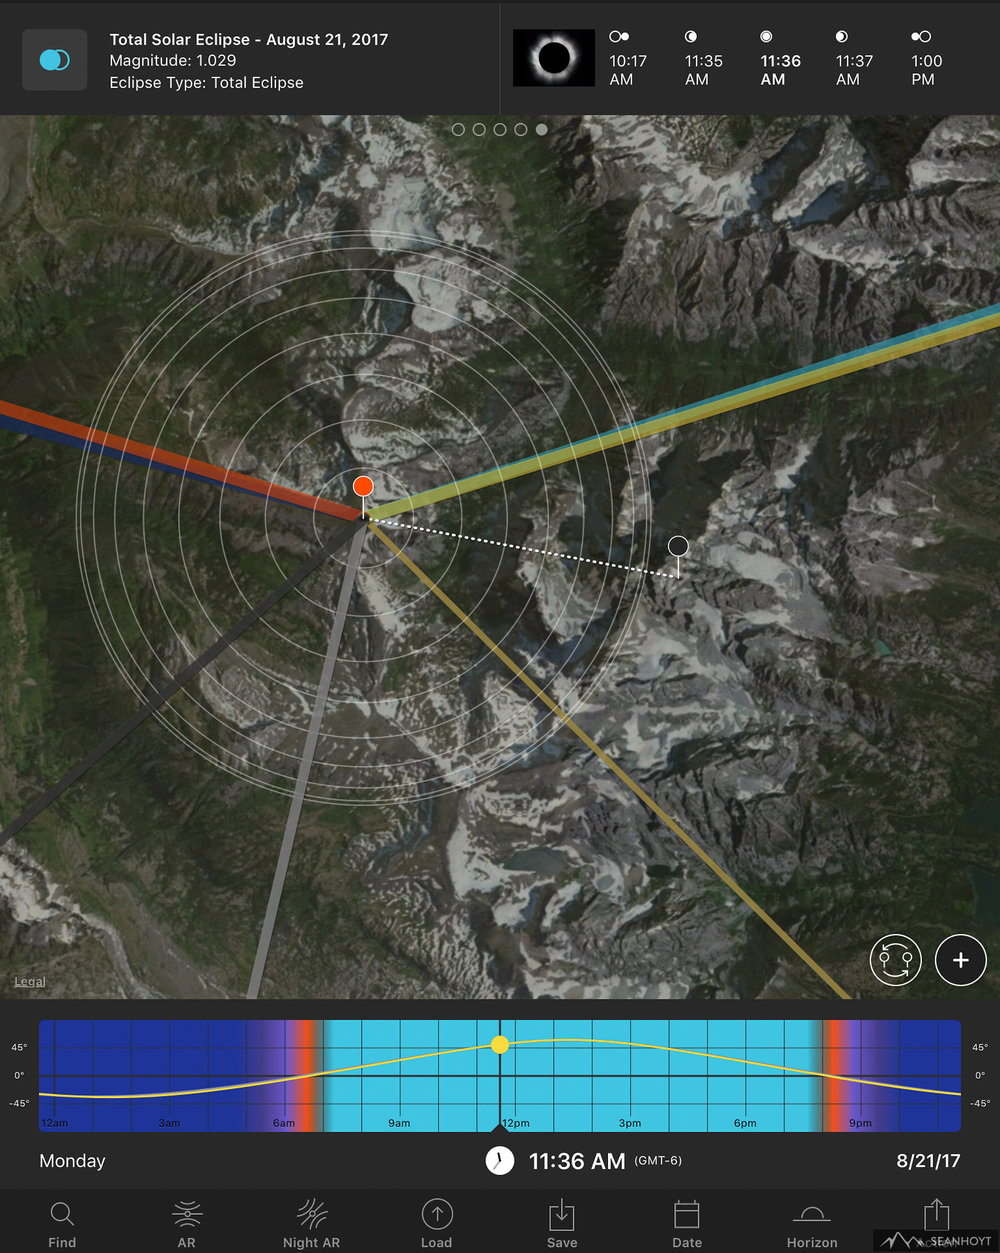 Photopills App for iOS - Table Mountain is the Orange Pin. The tallest peak, Grand Teton, is the Black pin. The thin yellow line is the sun and moon during eclipse to the Southwest.